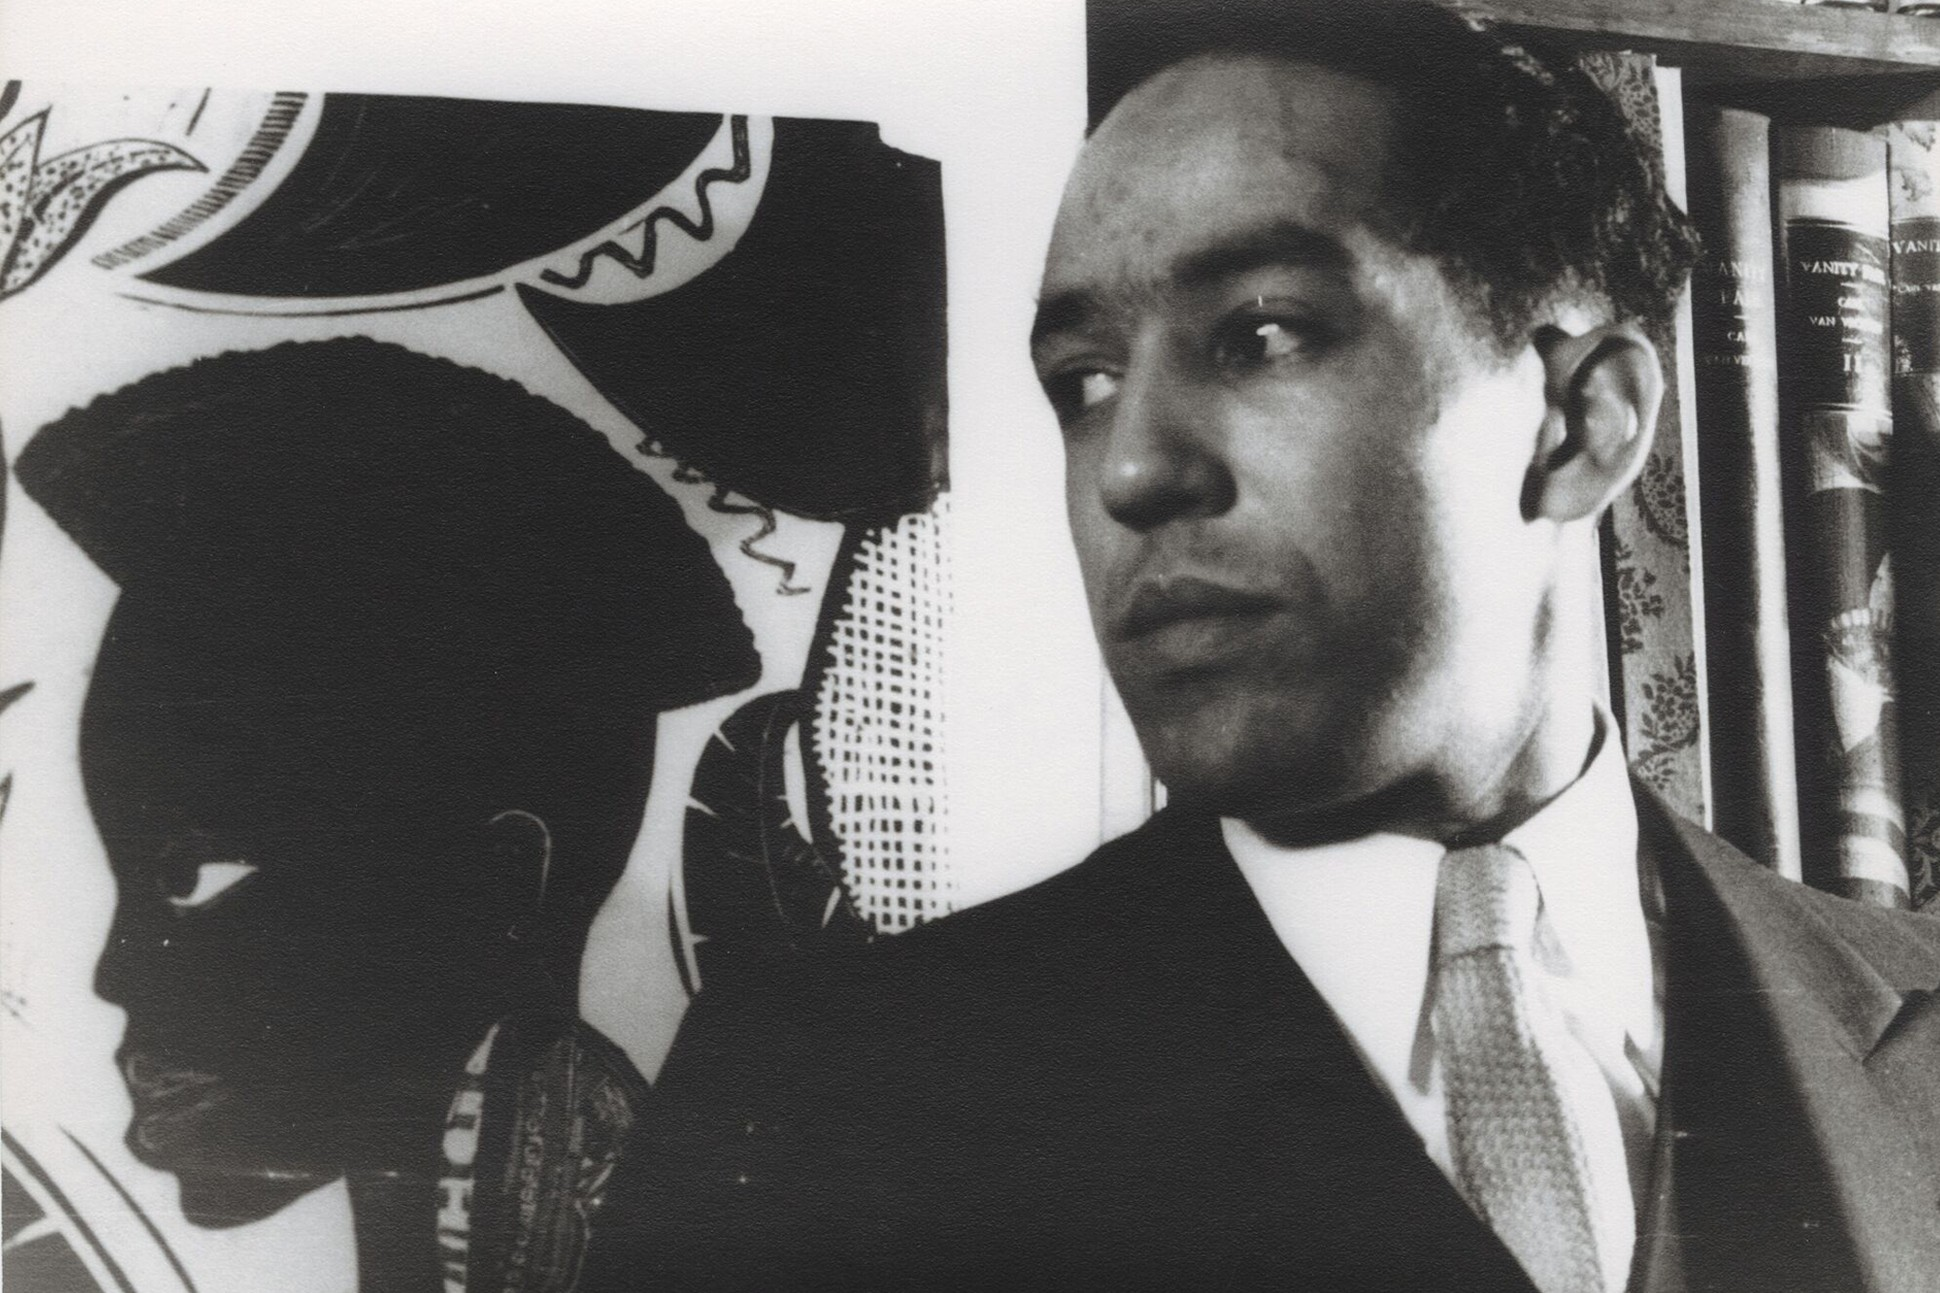 Black and white image of Langston Hughes